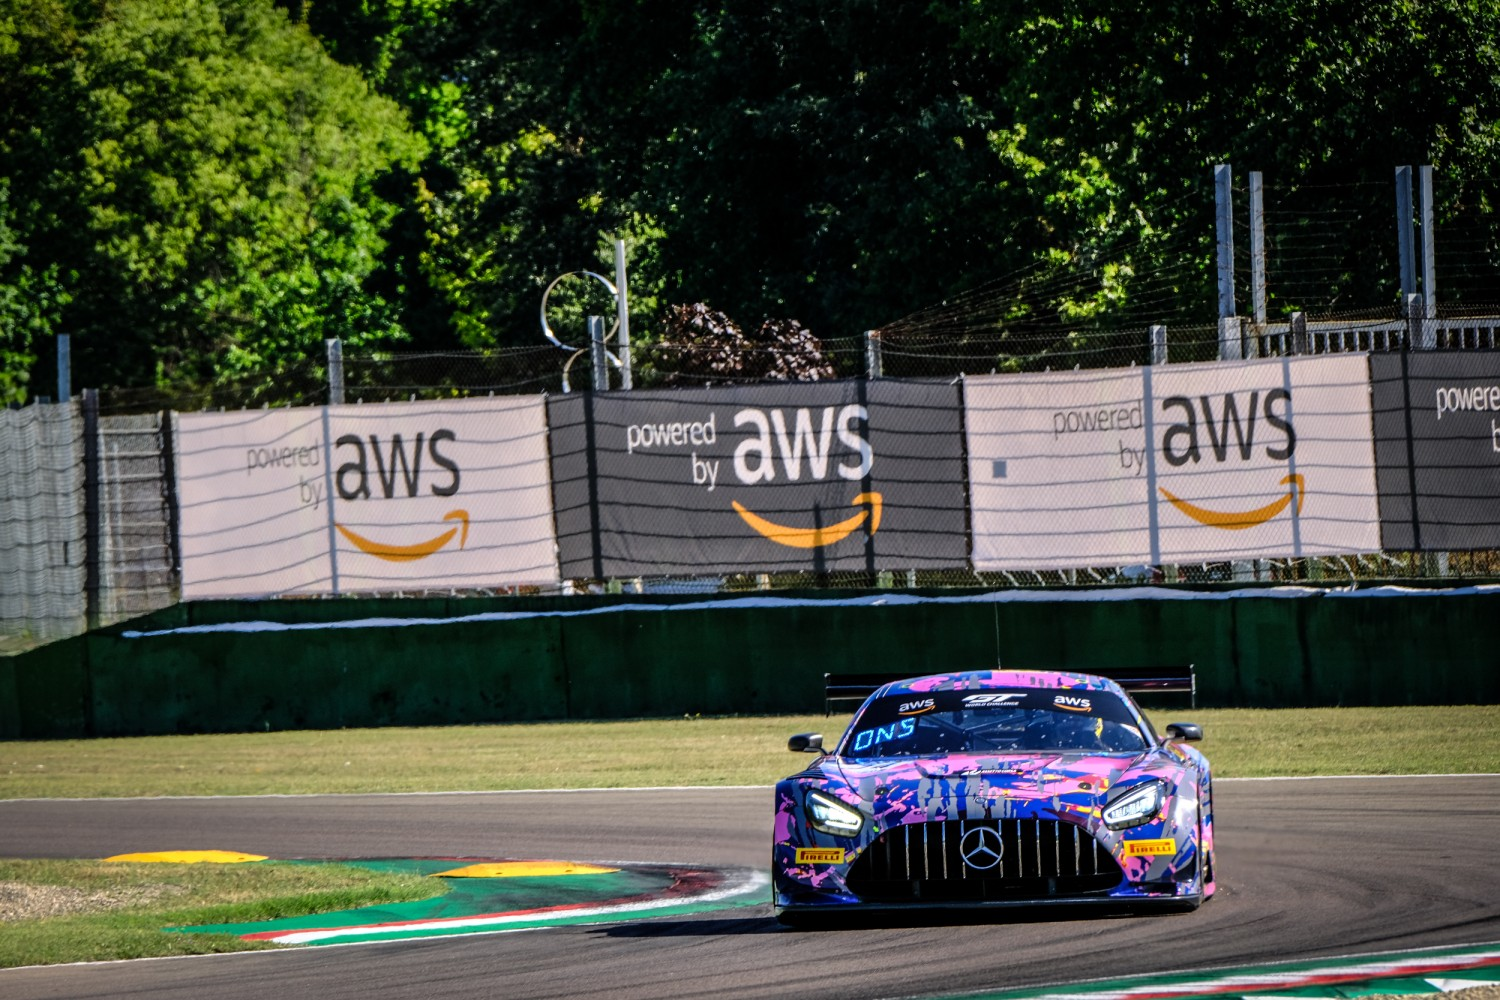 #74 Ram Racing GBR Mercedes-AMG GT3 Pro-Am Cup Remon Vos NDL - - Tom Onslow-Cole GBR, Free Practice  | SRO / Dirk Bogaerts Photography